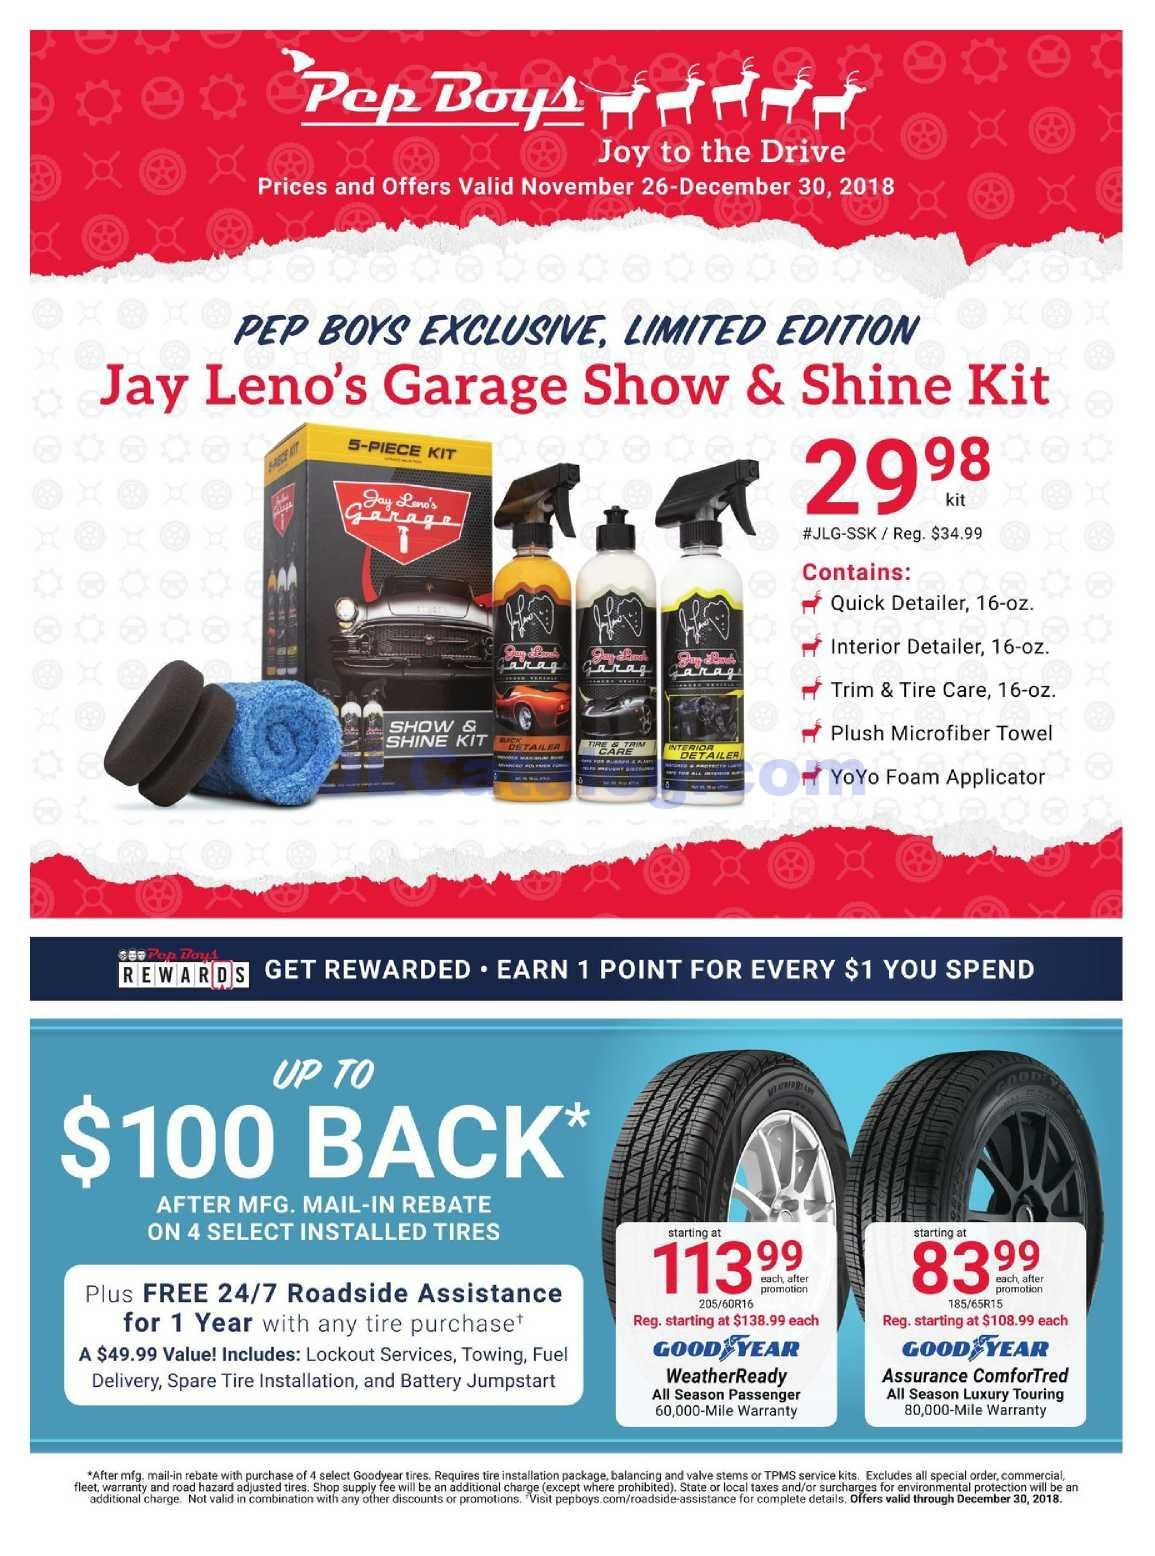 Pep Boys Weekly Ad November 26 December 30 2018 Do You Know